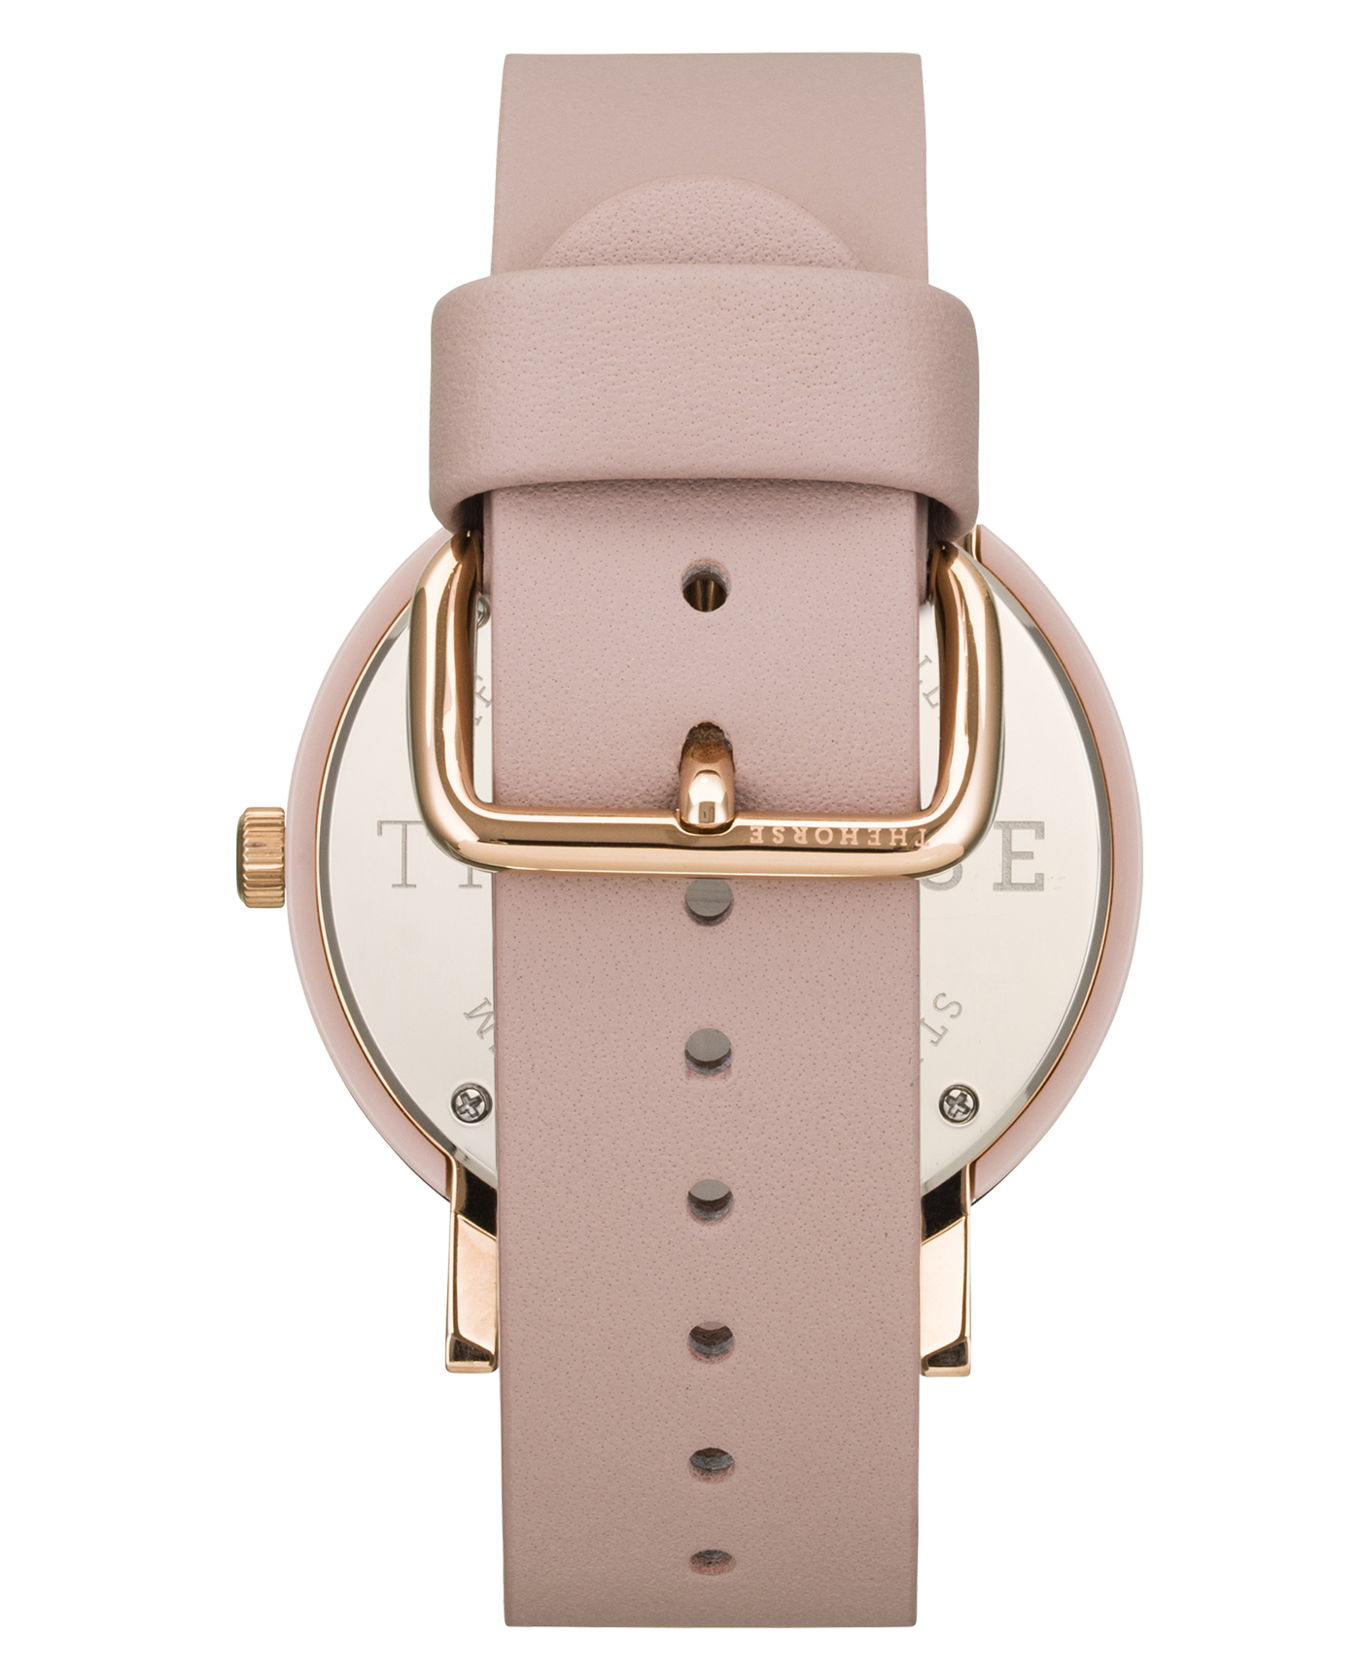 TORTOISE SHELL CASE - WHITE DIAL - ROSE GOLD INDEXING - BLUSH LEATHER